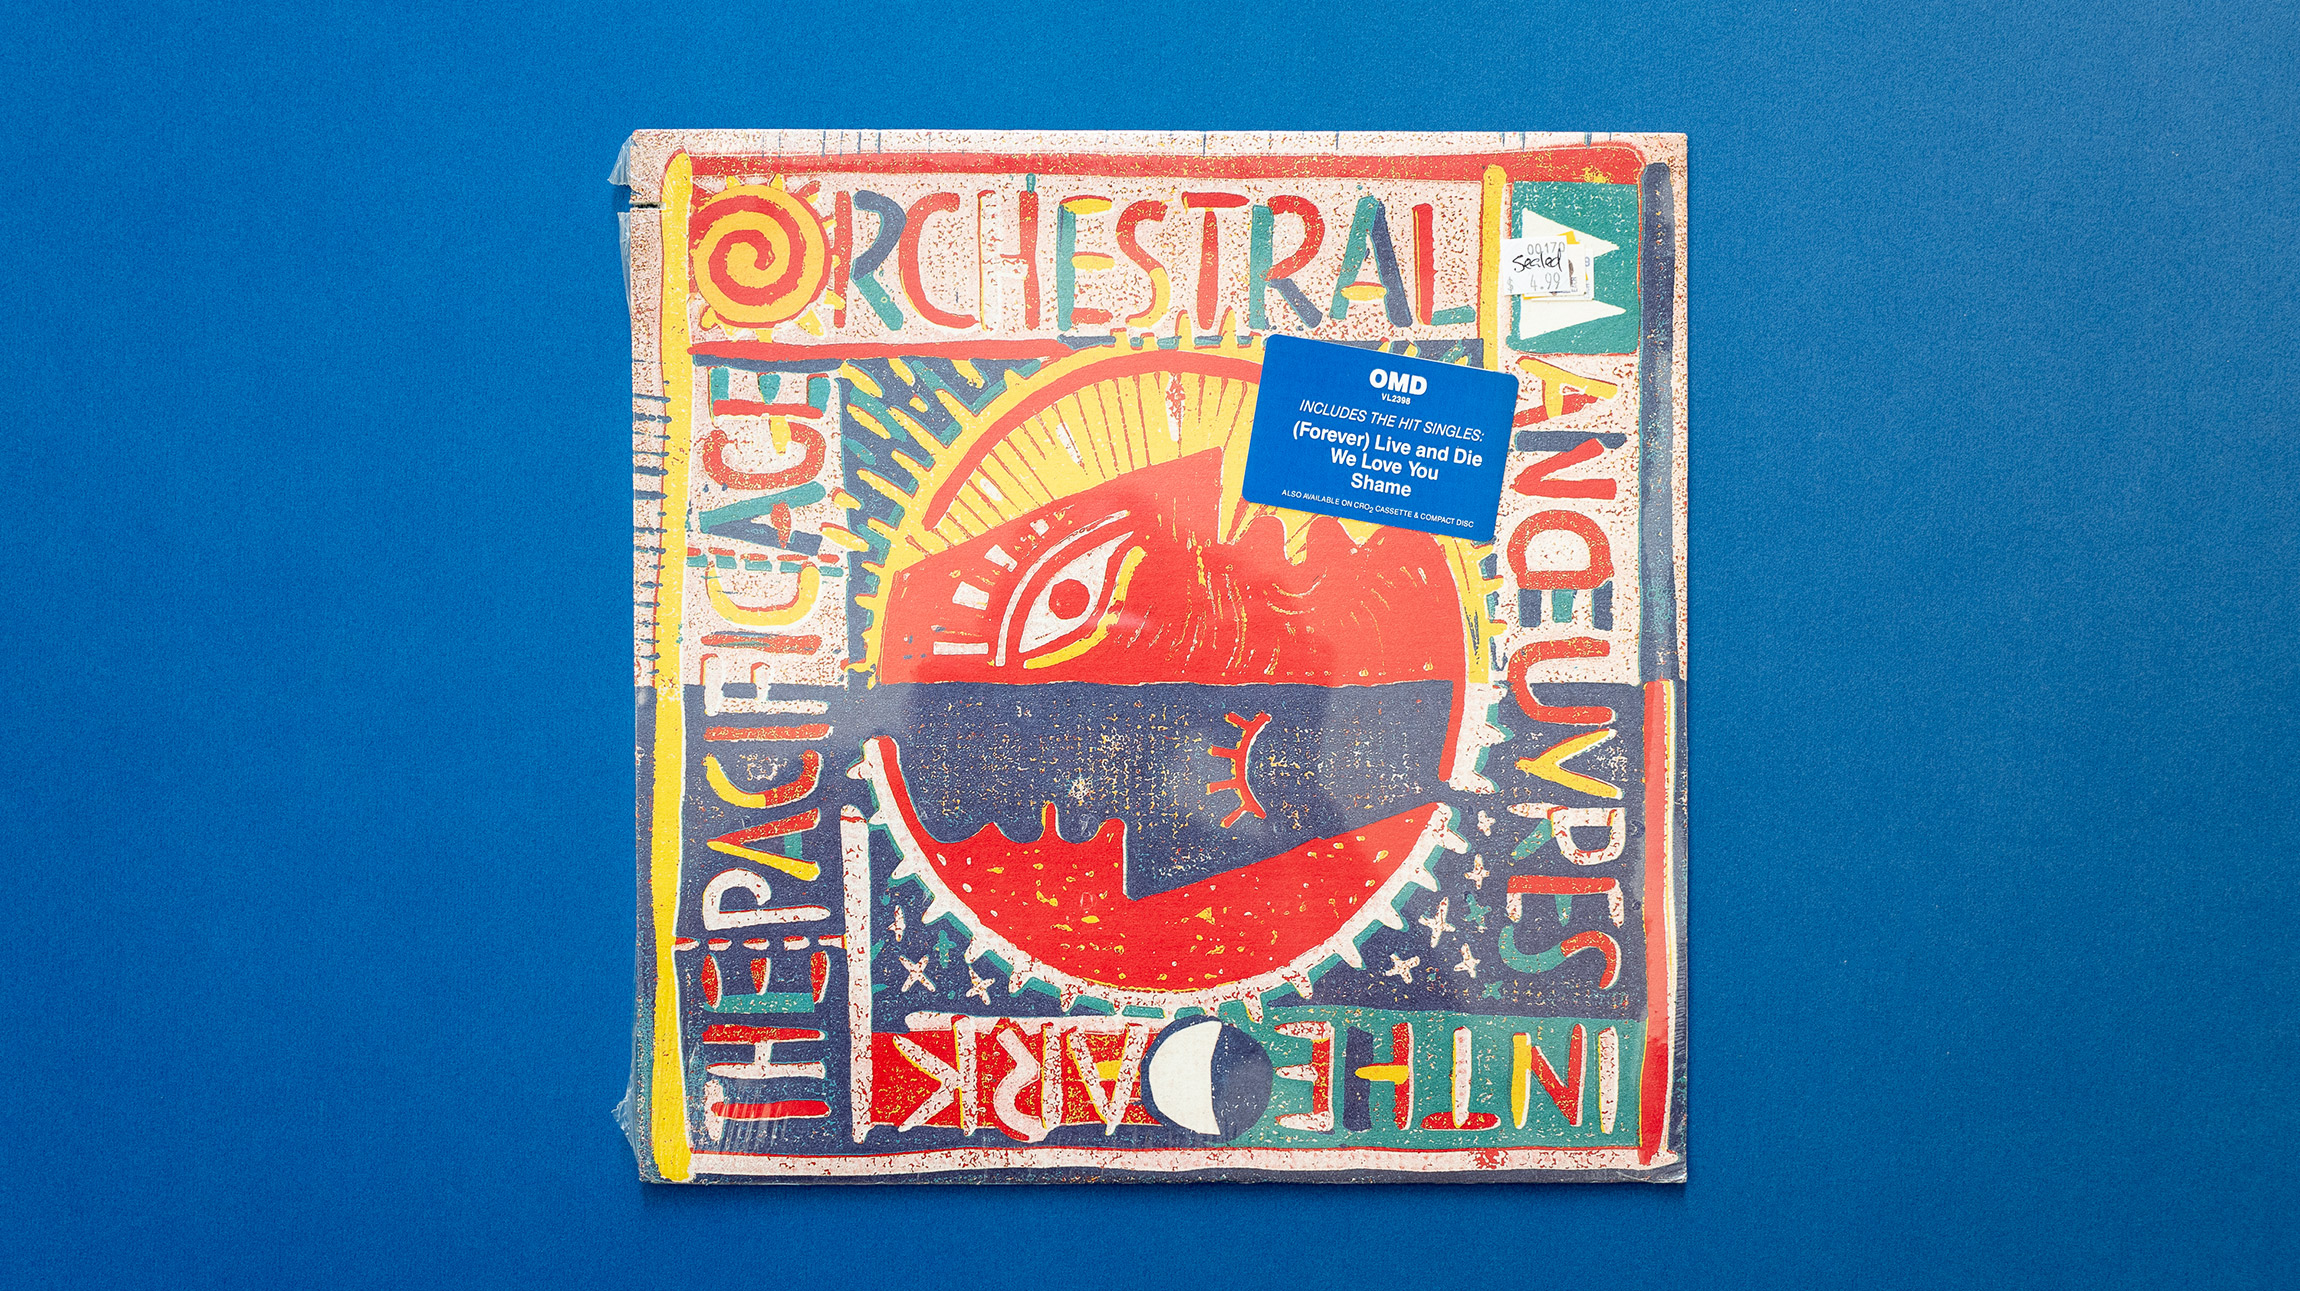 A colorful record cover for the band Orchestral Manoeuvers in the Dark